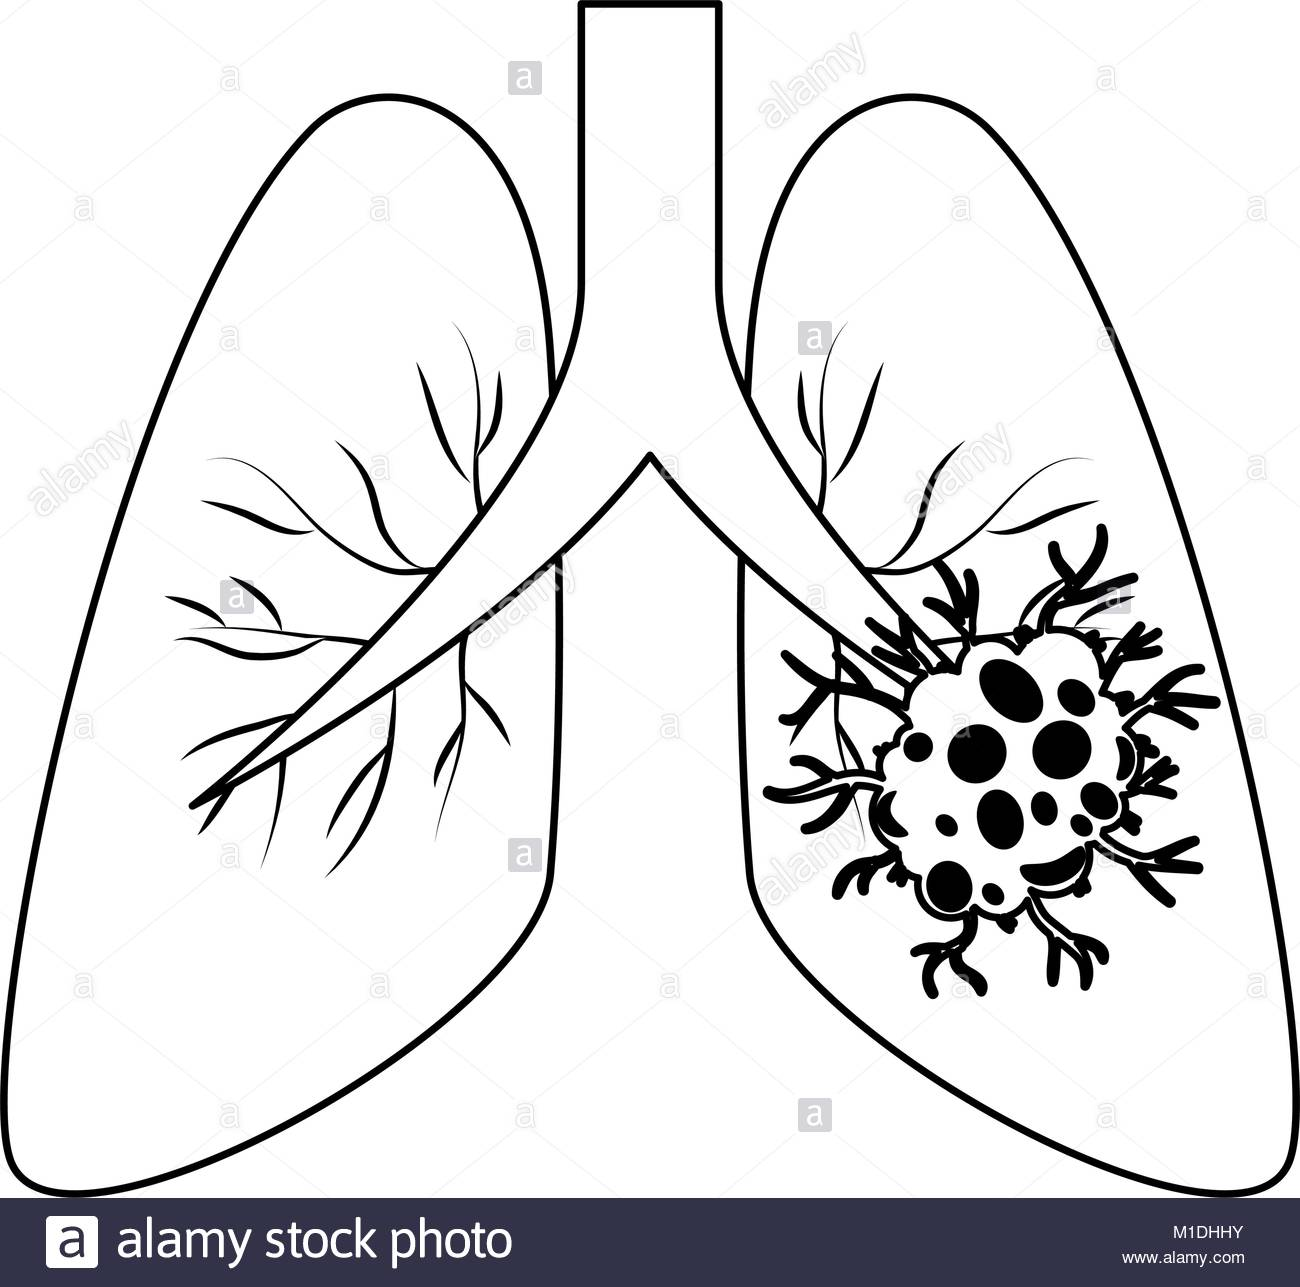 Cancer clipart sketch. Lung drawing at getdrawings